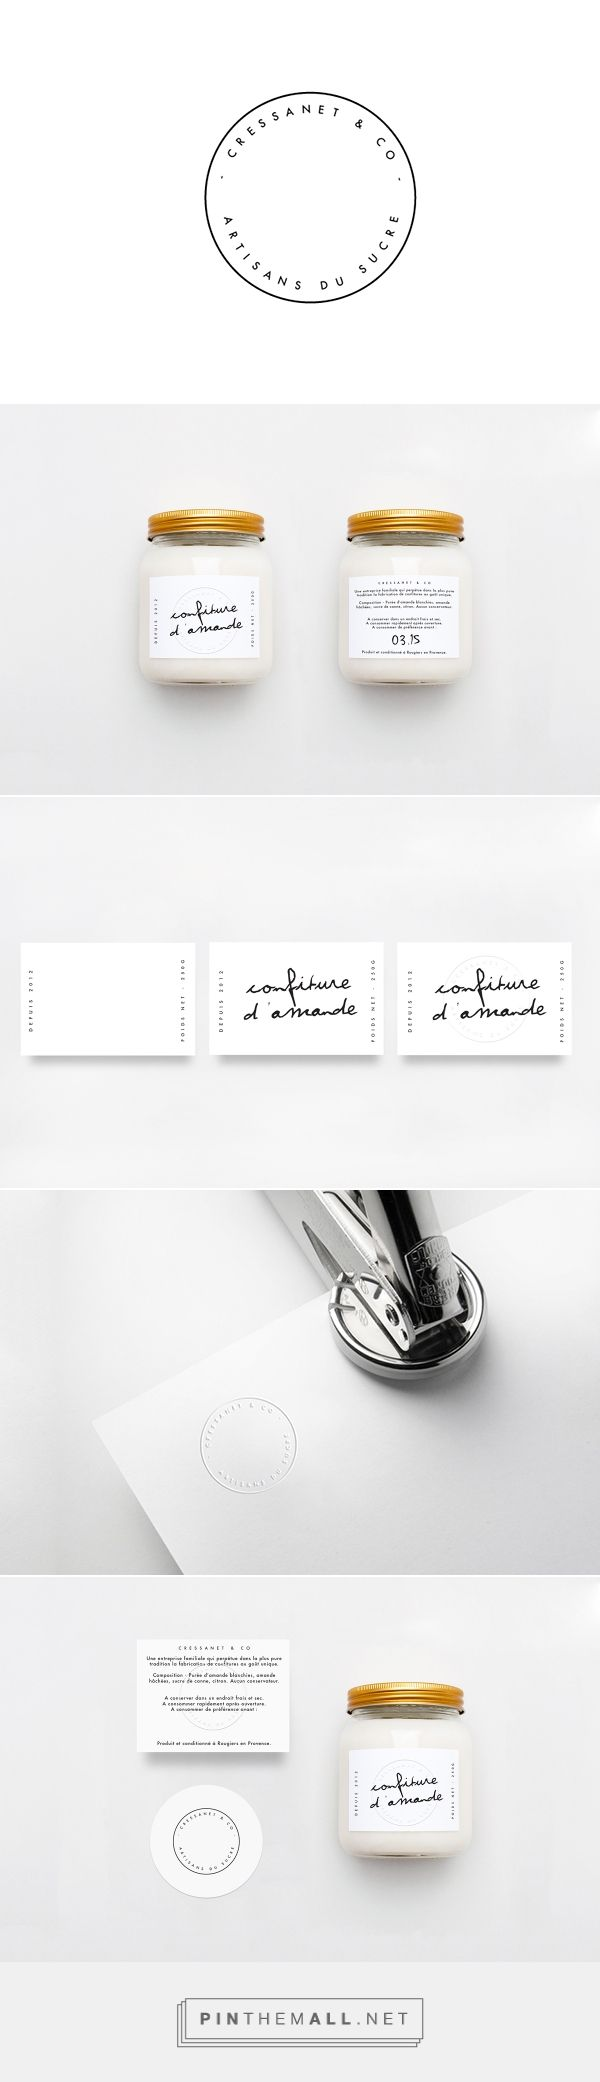 Cressanet & co - Artisanat on Packaging Design Served - created via https://pinthemall.net